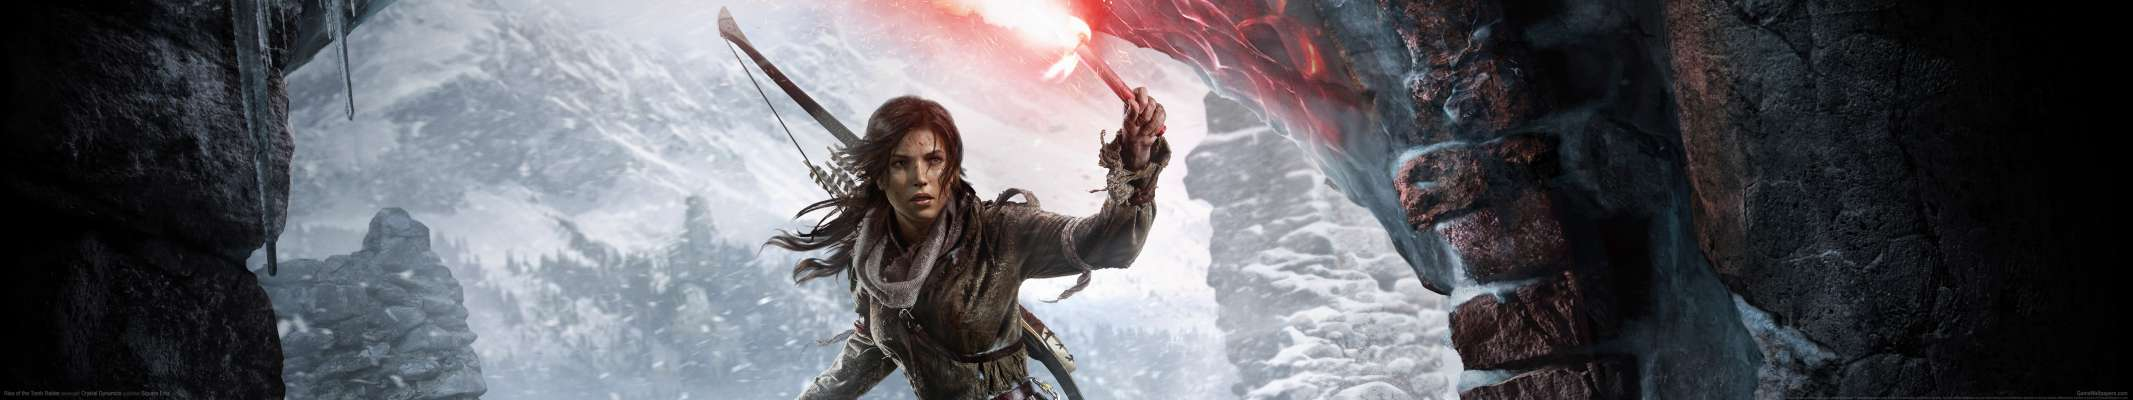 Rise of the Tomb Raider triple screen wallpaper or background